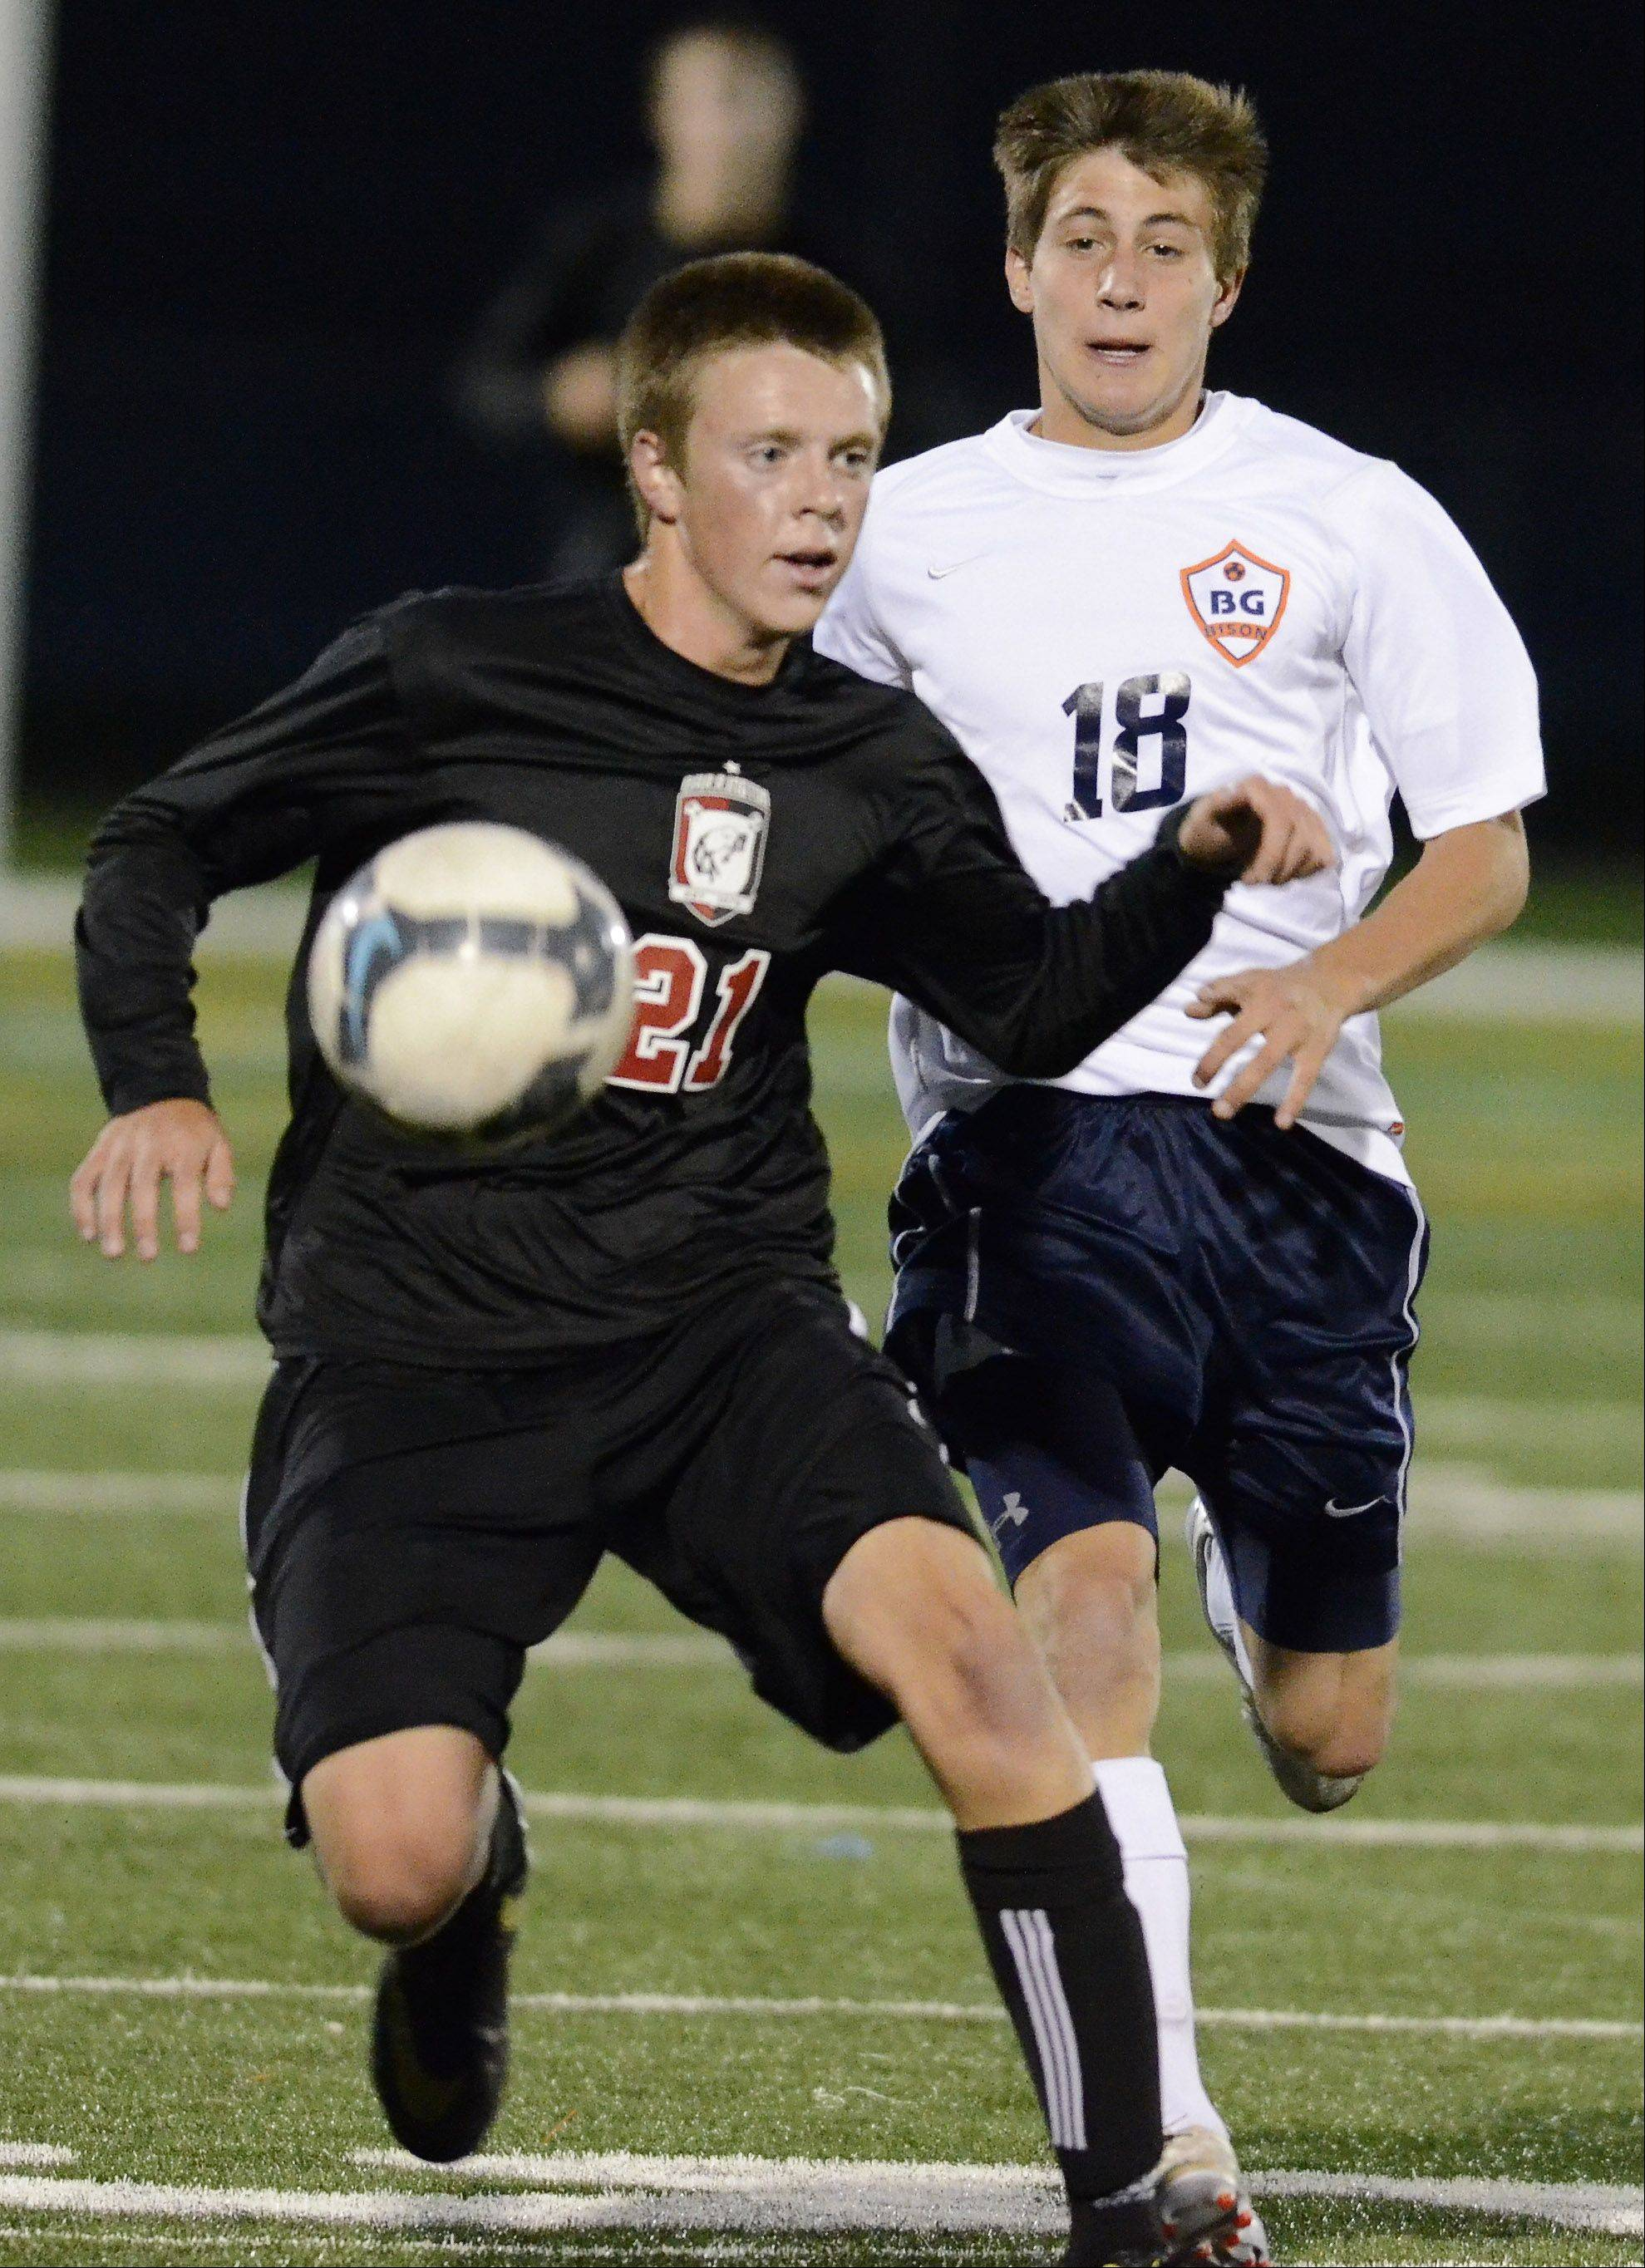 Barrington's Jason Frenk, left, looks for an open teammate as Buffalo Grove's Zach Masciopinto closes in during Tuesday's game.